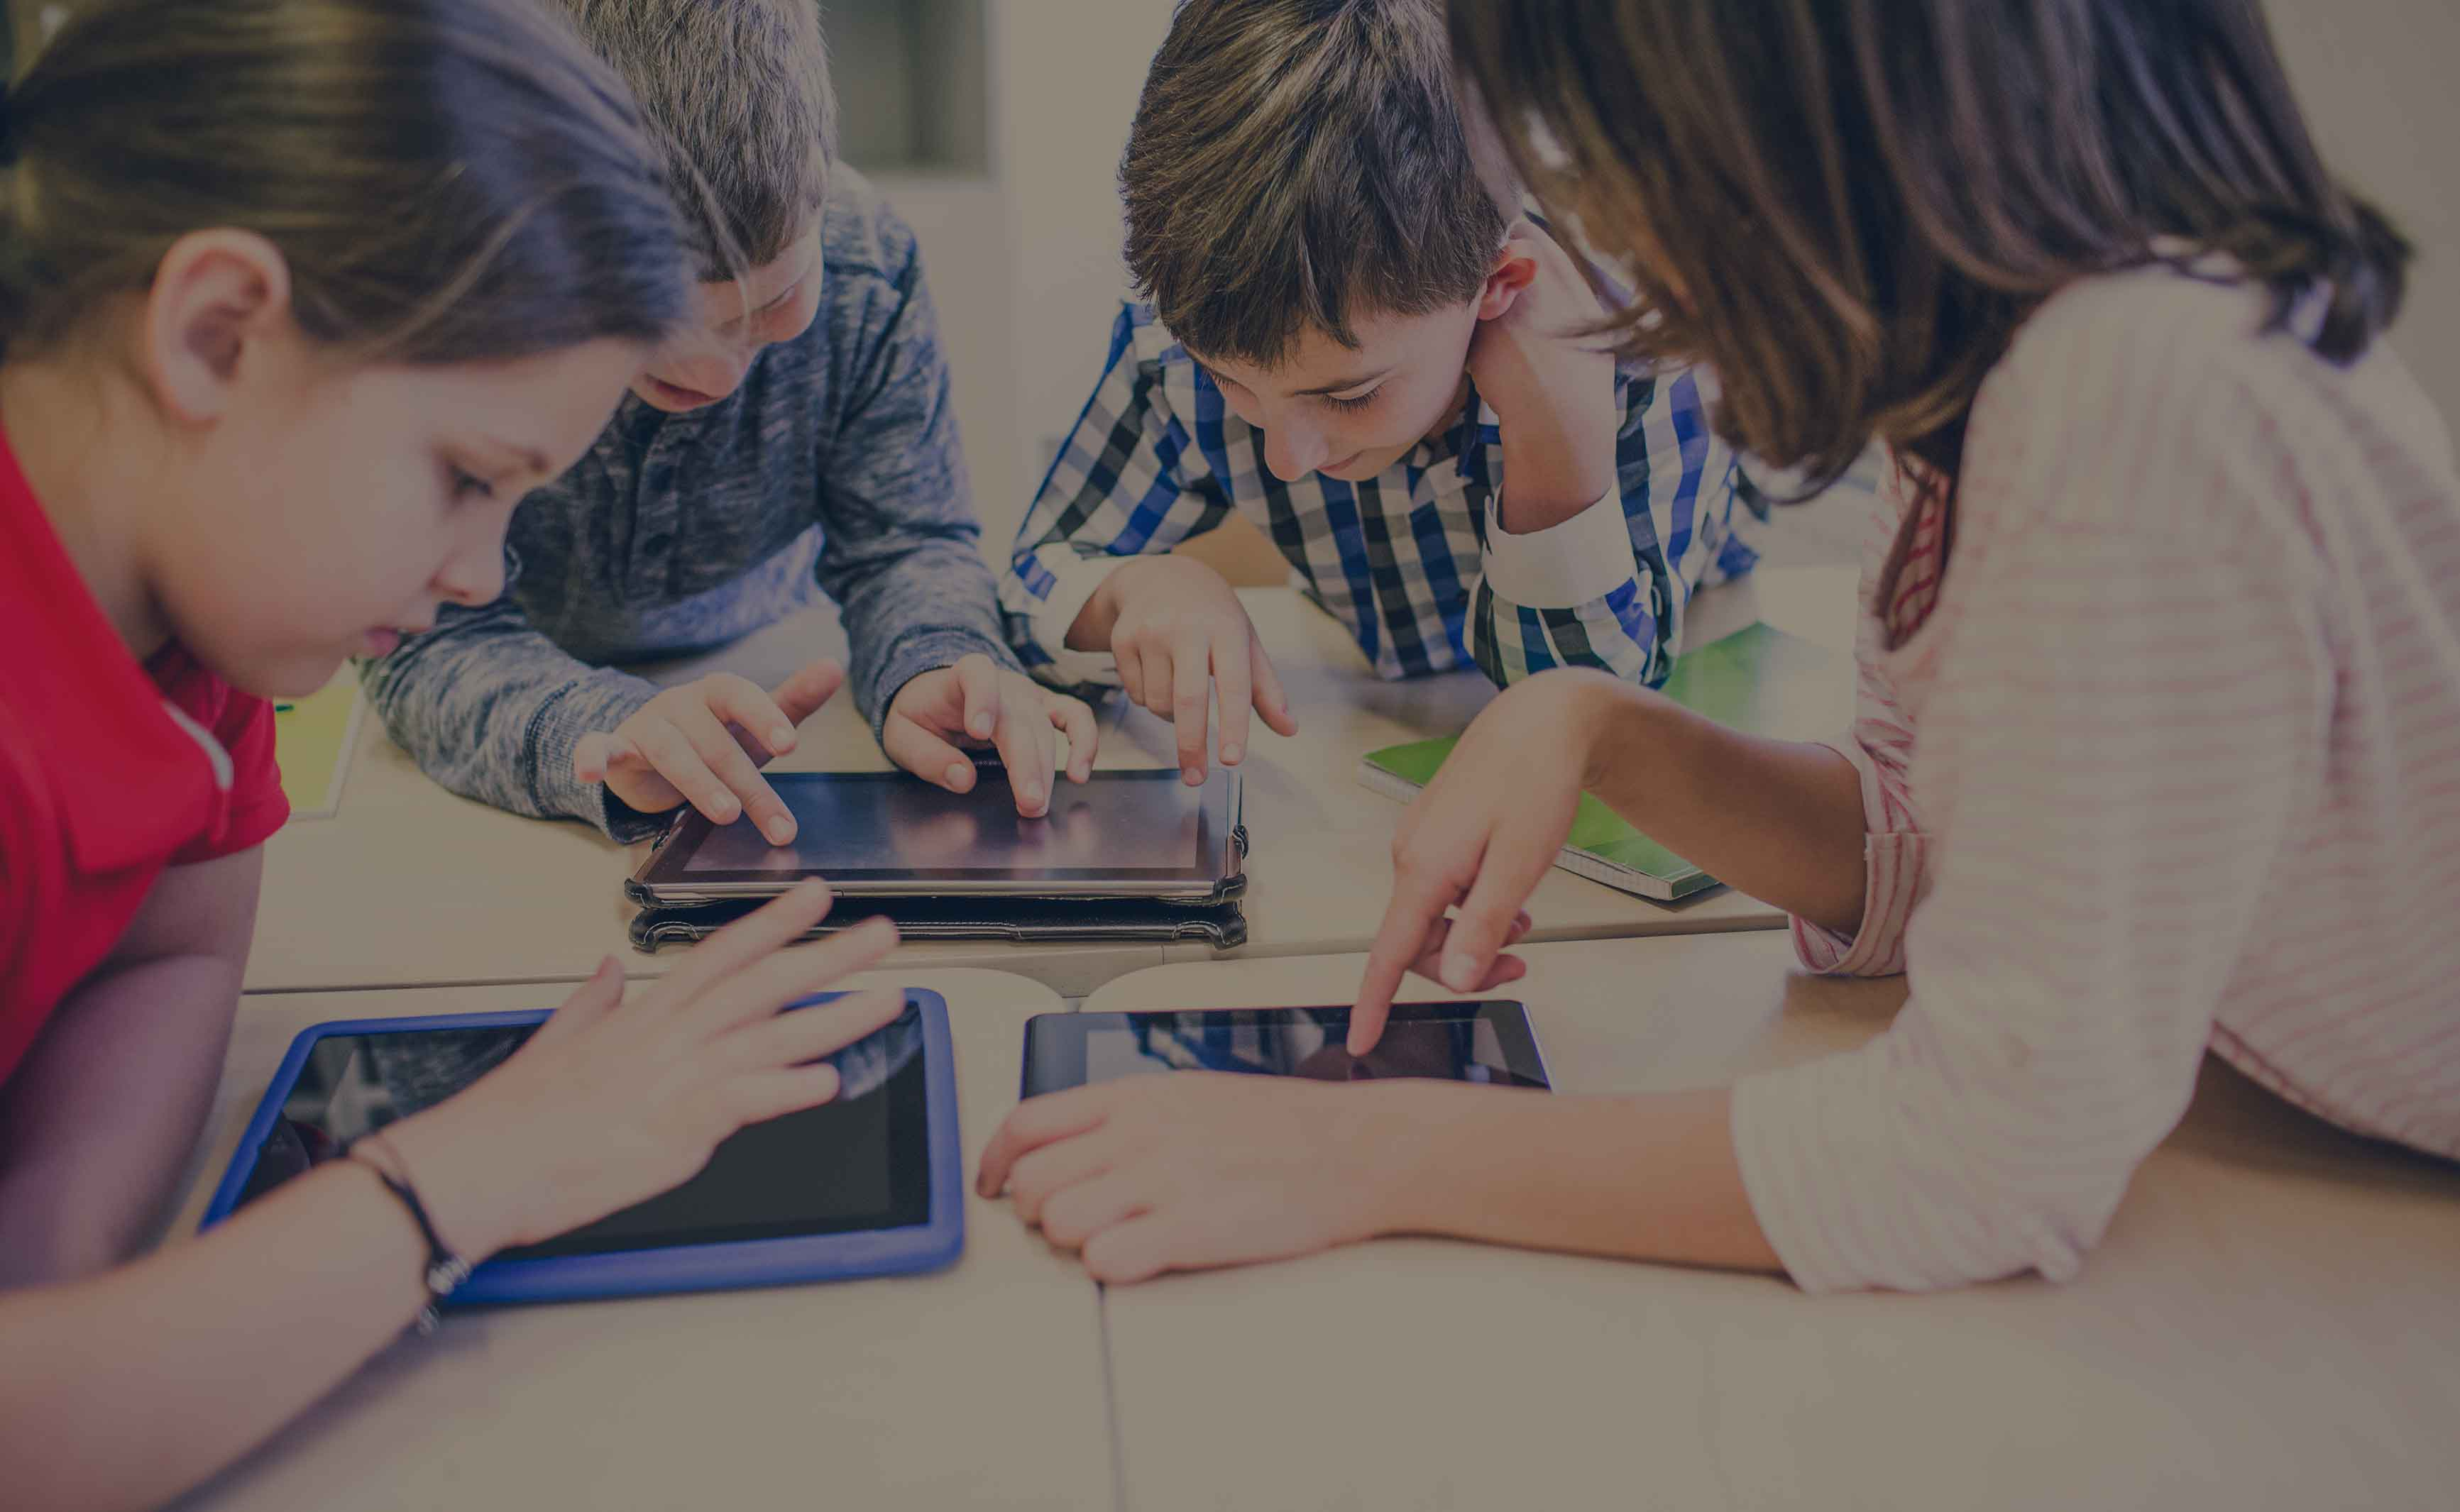 3 Cool Ways Real Time Location Services Can Be Used In Schools